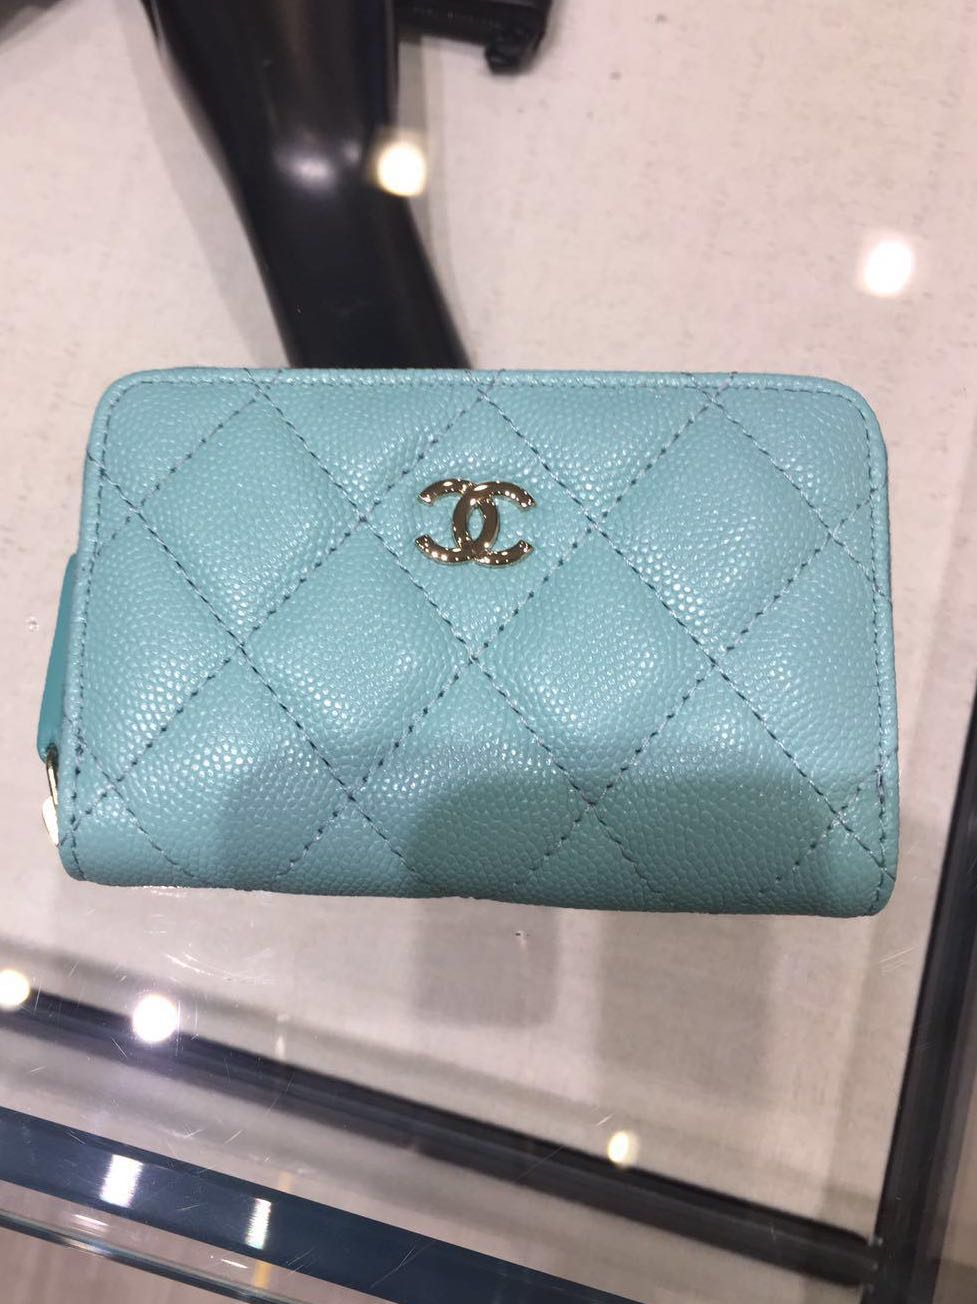 9b3c1ae83614 Reserved in a flash) Chanel 19C Zip Around Coin/Cardholder in ...